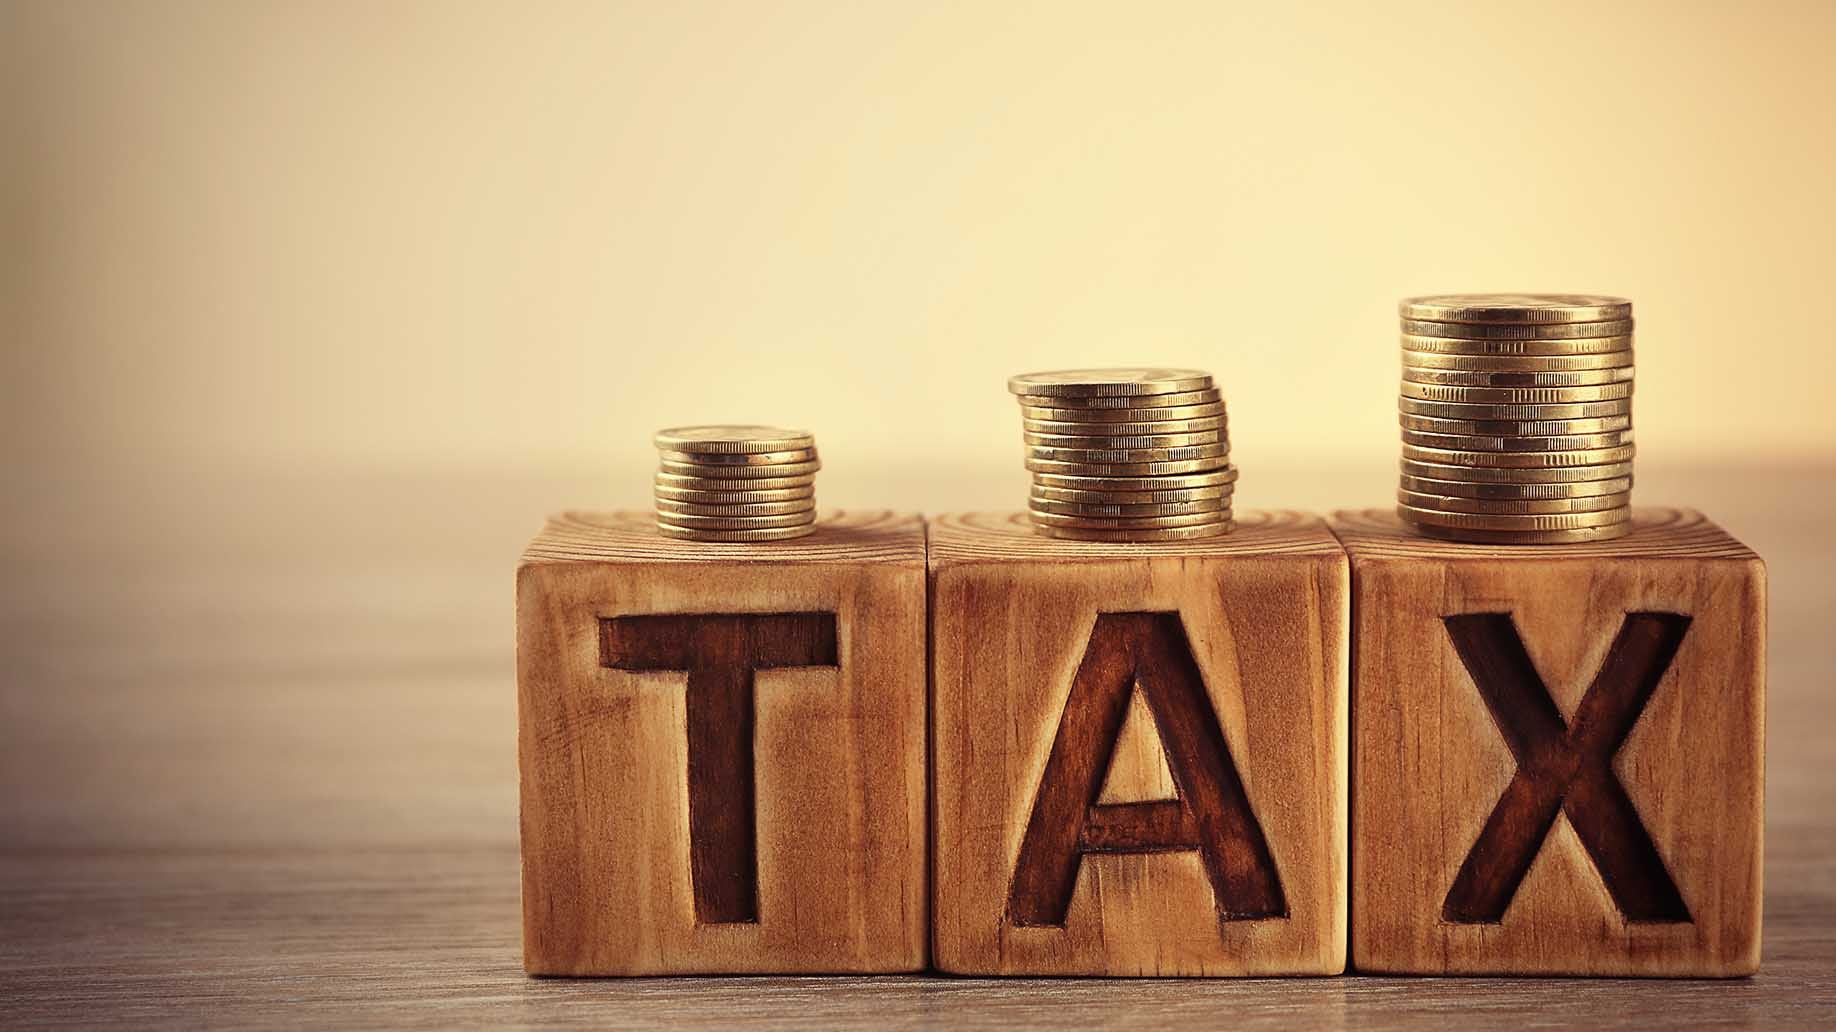 tax concept wooden blocks coins on